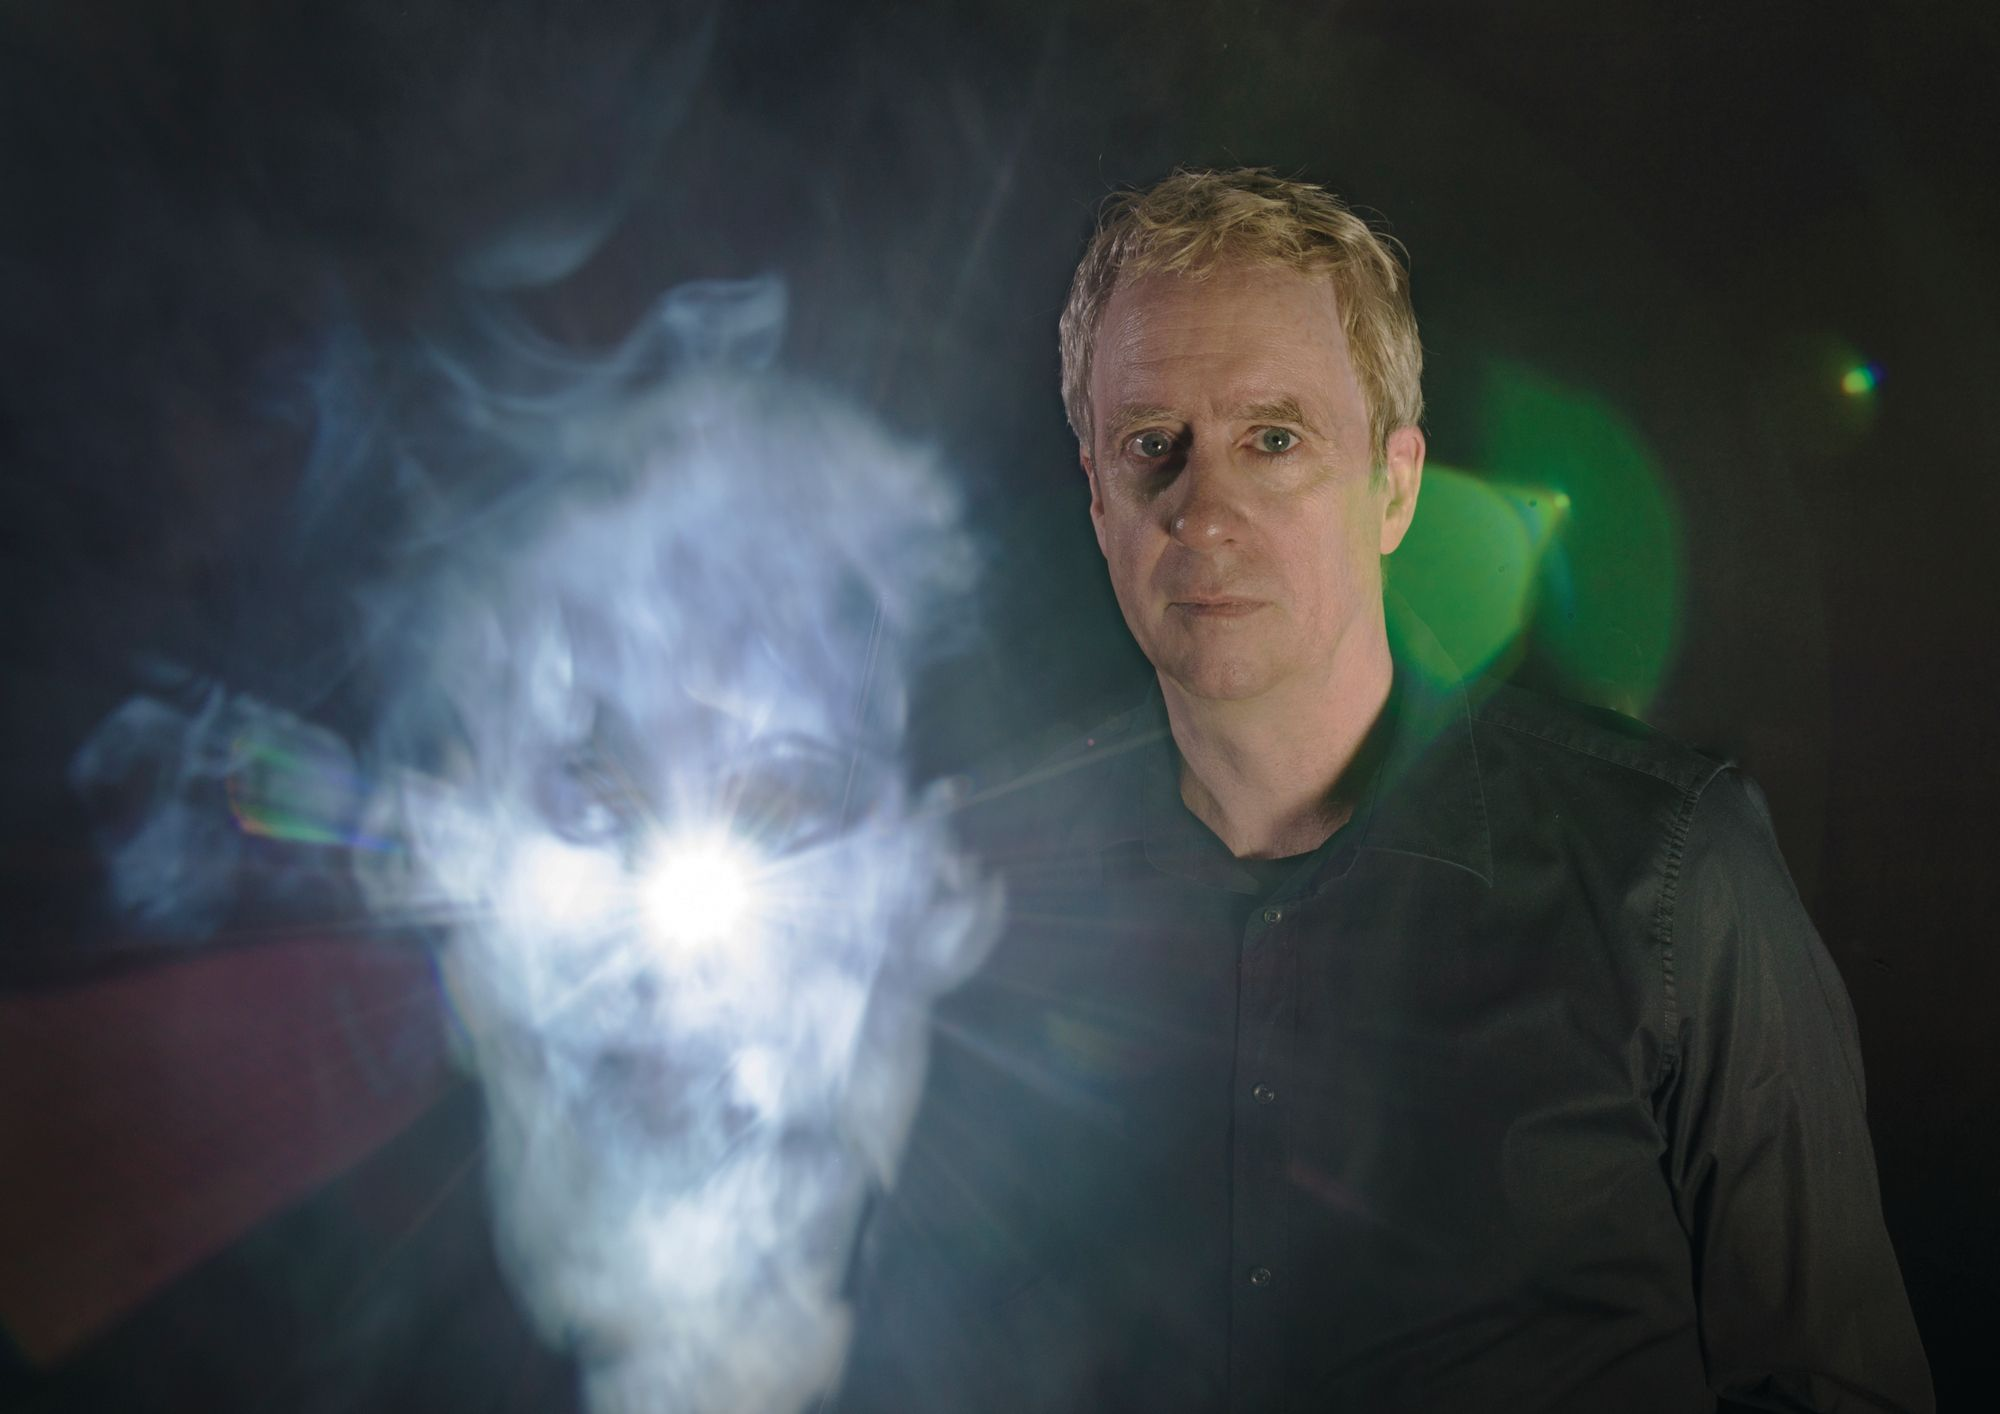 Tony Oursler On His New Exhibition In Taiwan—And Why Smartphones Are Like Drugs